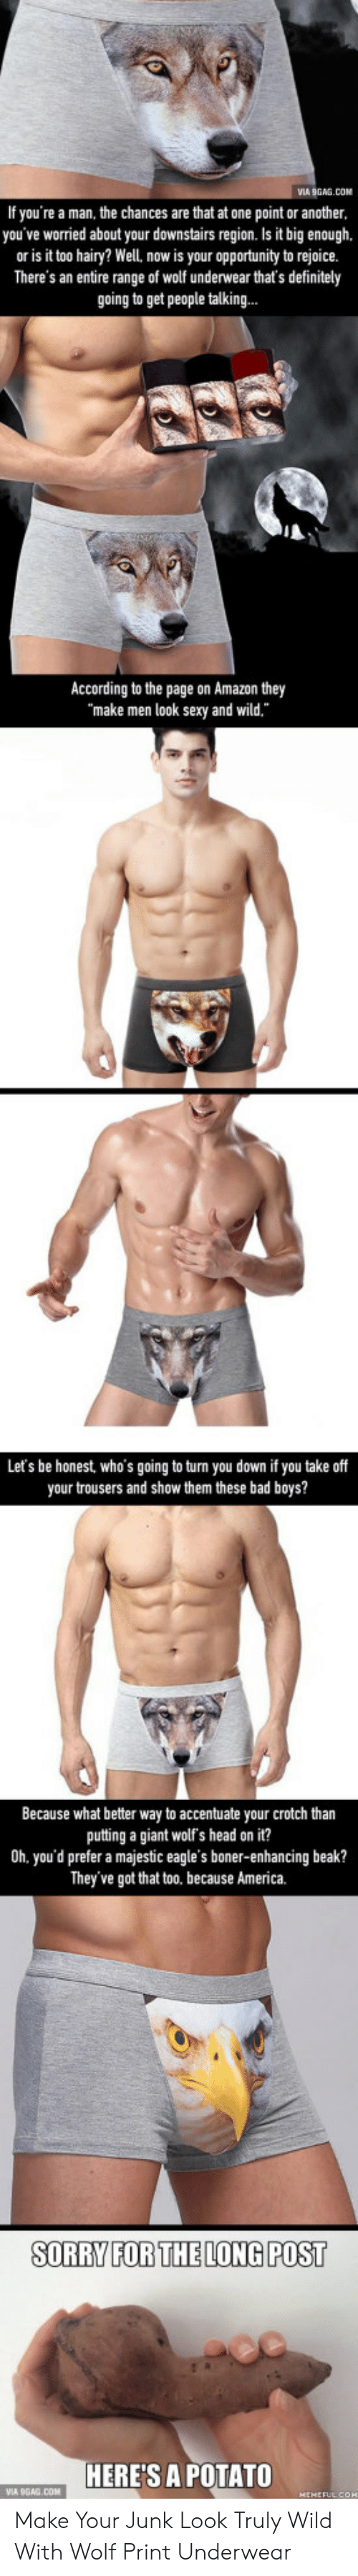 Because America: VIA 9GAG.CON  If you're a man, the chances are that at one point or another  you've worried about your downstairs region. Is it big enough,  or is it too hairy? Well, now is your opportunity to rejoice.  There's an entire range of wolf underwear that's definitely  going to get people talking...  According to the page on Amazon they  make men look sexy and wild.  Let's be honest, who's going to turn you down if you take off  your trousers and show them these bad boys?  Because what better way to accentuate your crotch than  putting a giant wolf's head on it?  0h. you'd prefer a majestic eagle's boner-enhancing beak?  They've got that too. because America.  SORRY FORTHELONG POST  HERE'S A POTATO Make Your Junk Look Truly Wild With Wolf Print Underwear